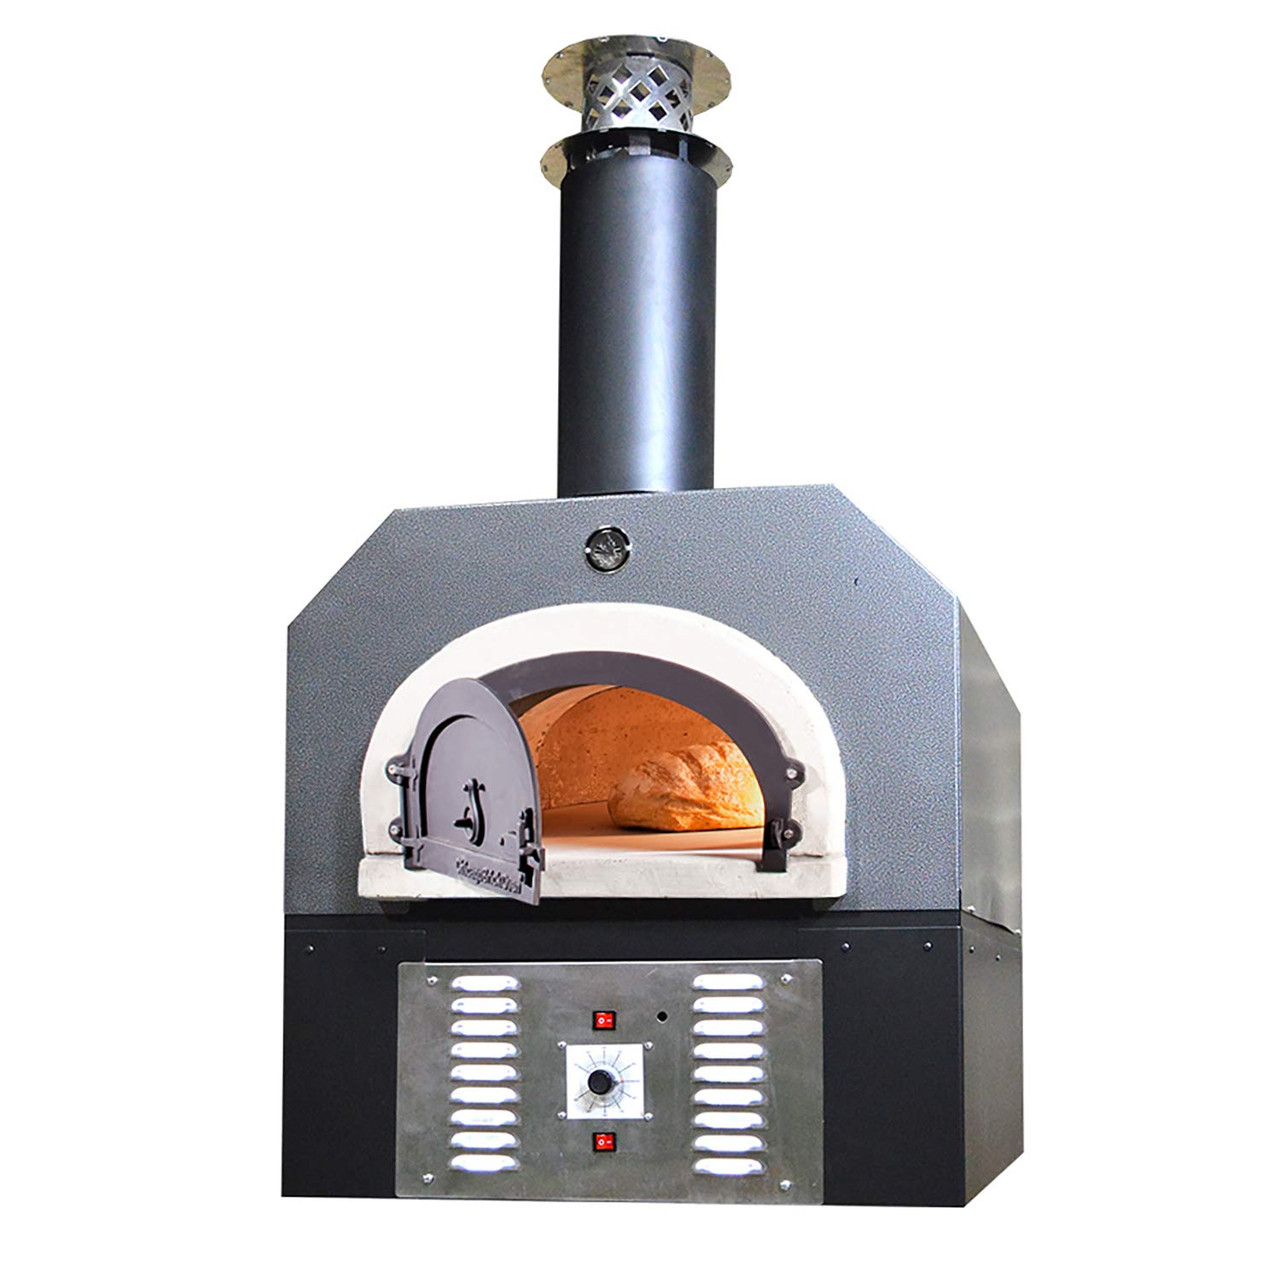 Chicago Brick Oven Propane Gas Wood Burning Outdoor Pizza Oven